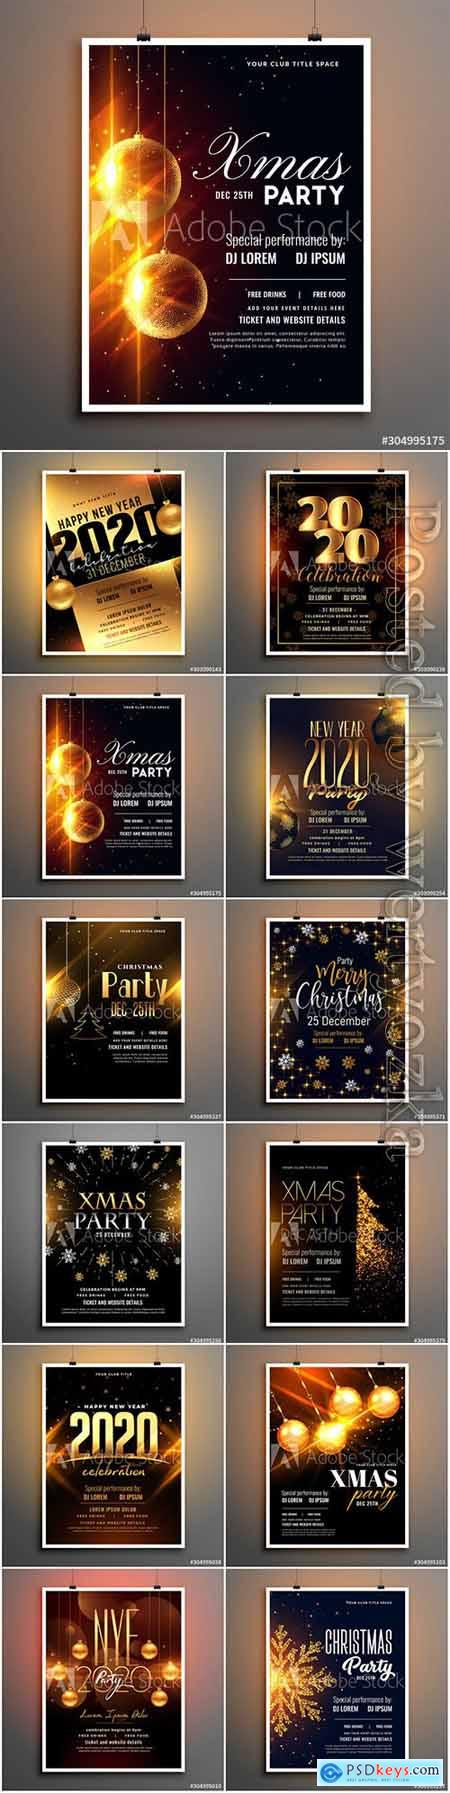 Merry christmas party flyer with golden sparkle tree